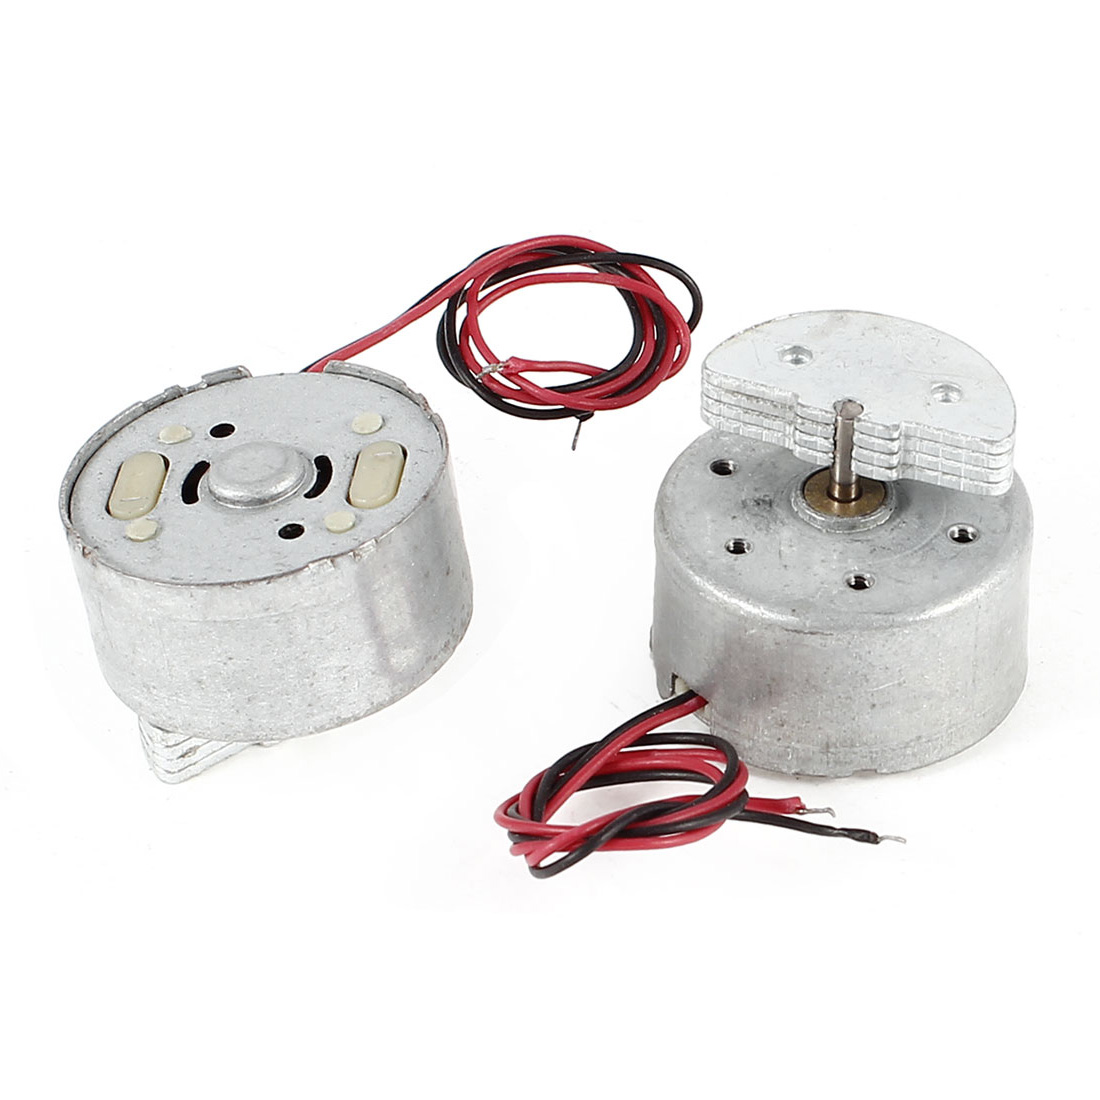 2 Pcs Mini Vibration Vibrating Electric Motor 3500RPM DC 1.5-6V RF300 for Toys Game Devices